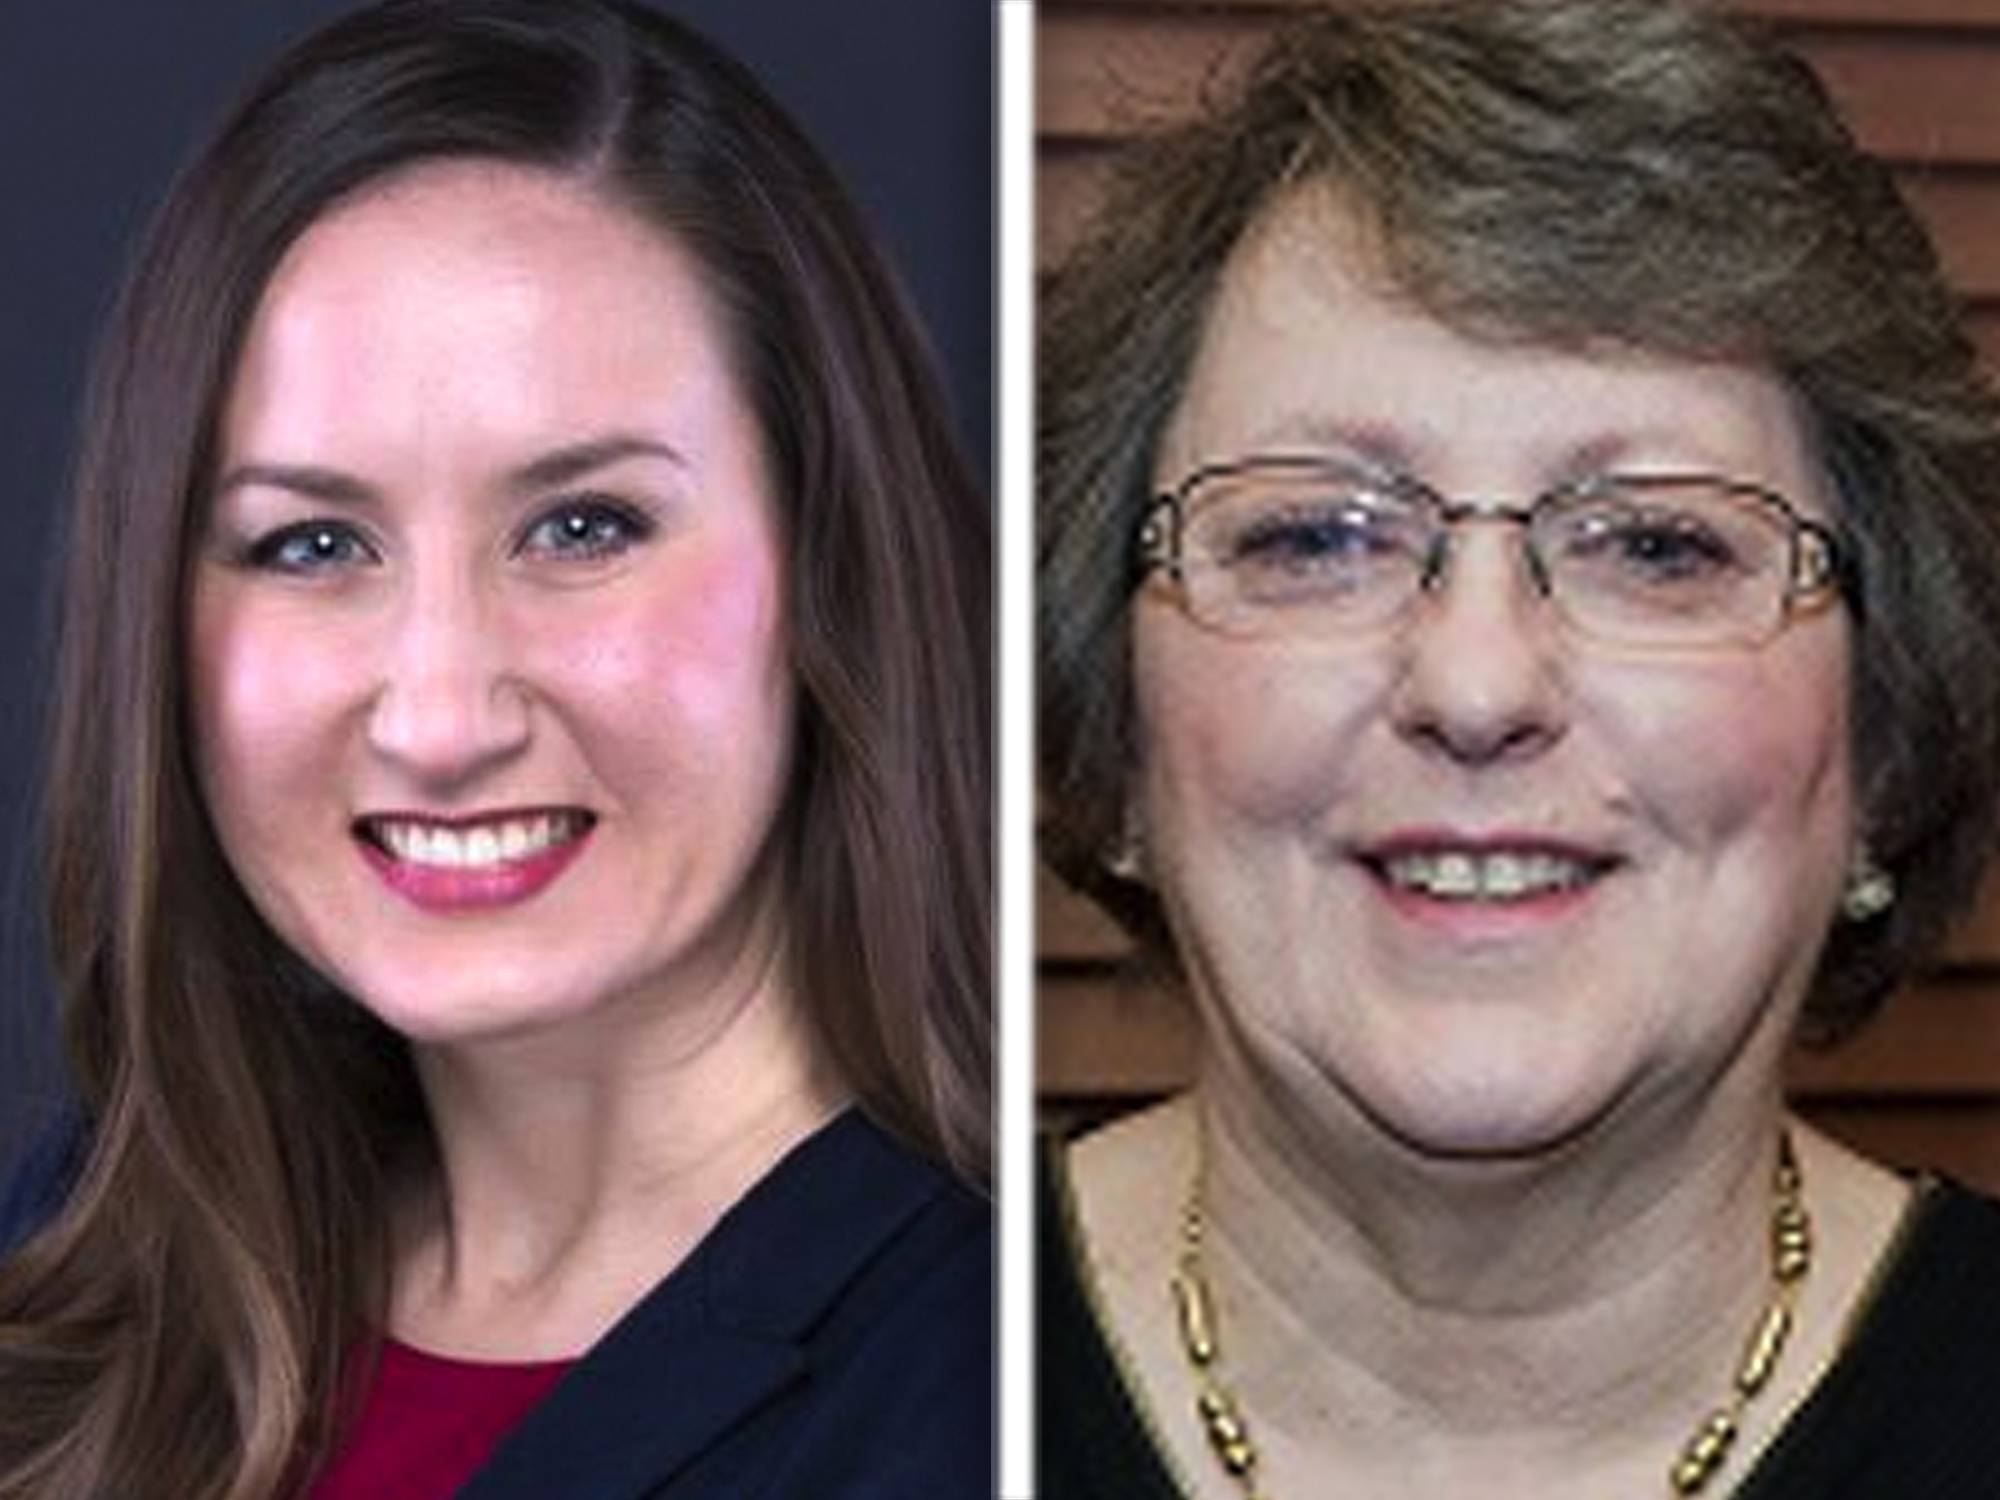 Jillian Bernas, left, and Charlotte Kegarise are candidates in the Republican primary for the 56th state House District seat.